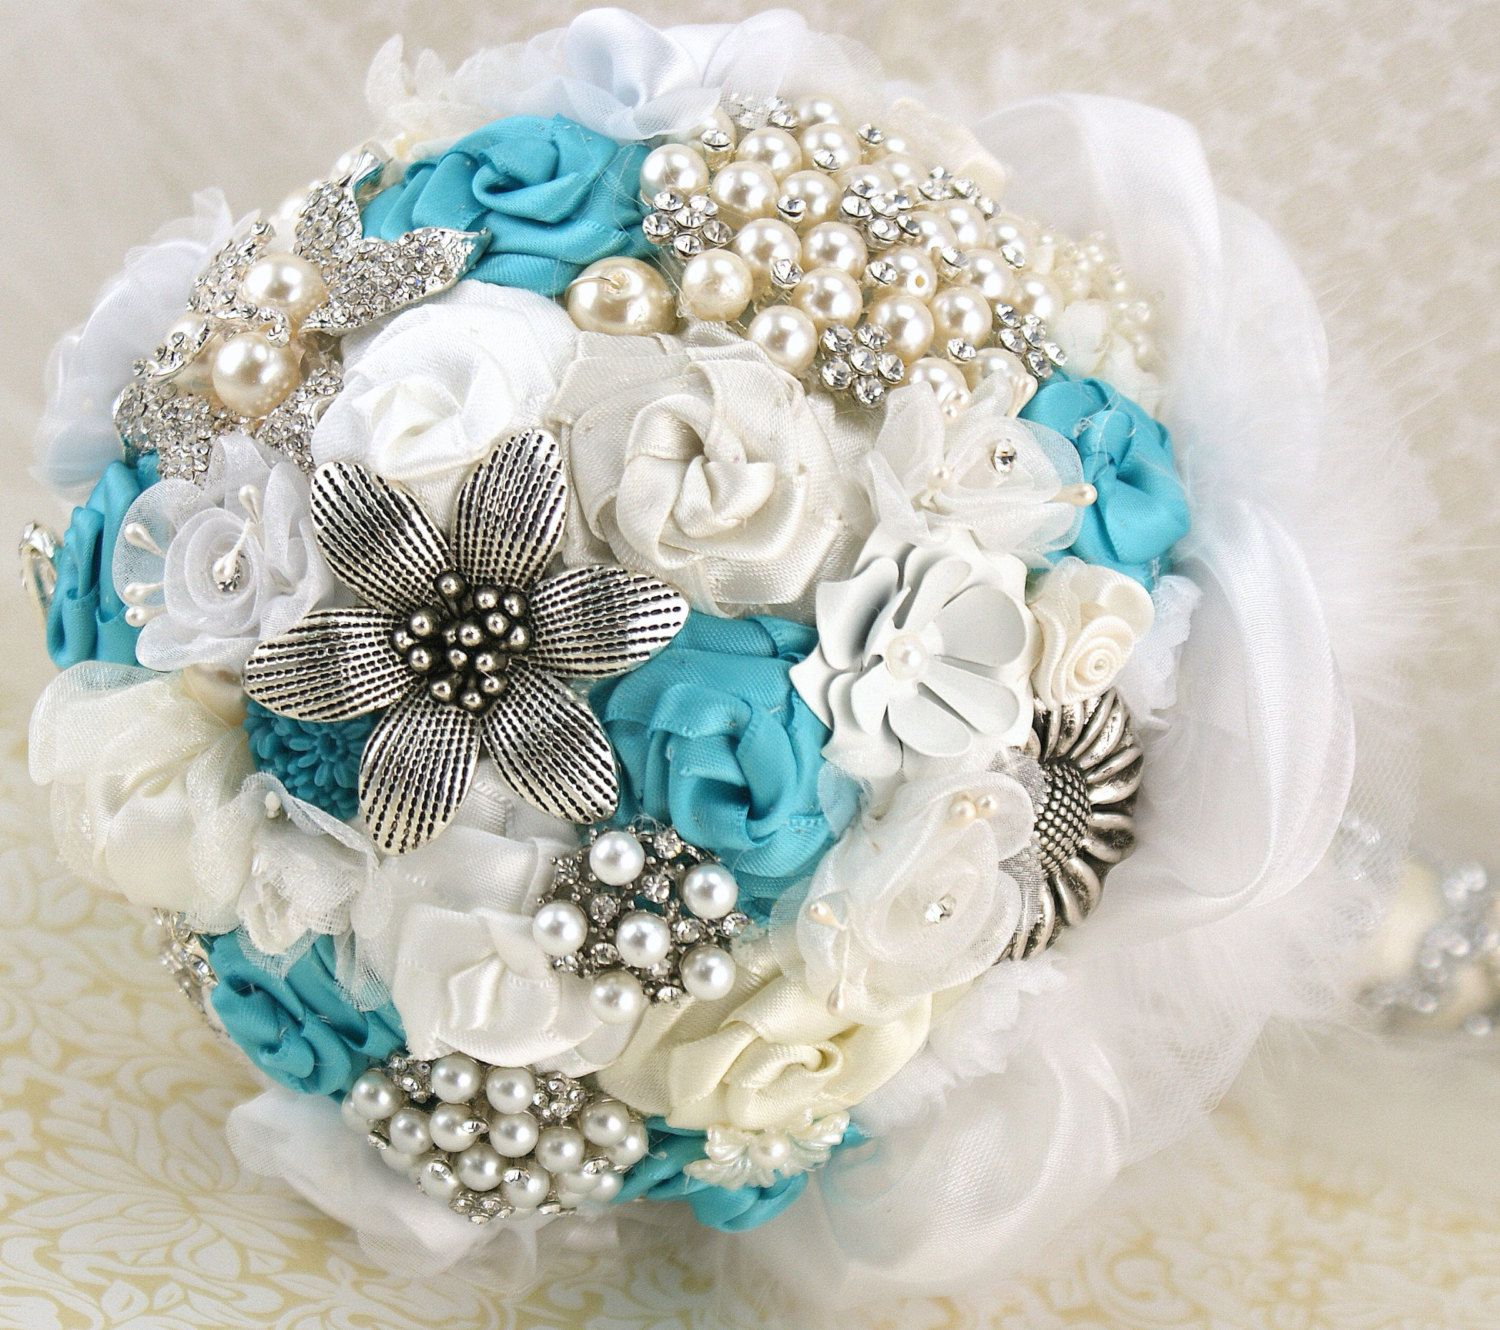 Turquoise wedding bouquet are these silk flowers beautiful turquoise wedding bouquet are these silk flowers beautiful dhlflorist Images